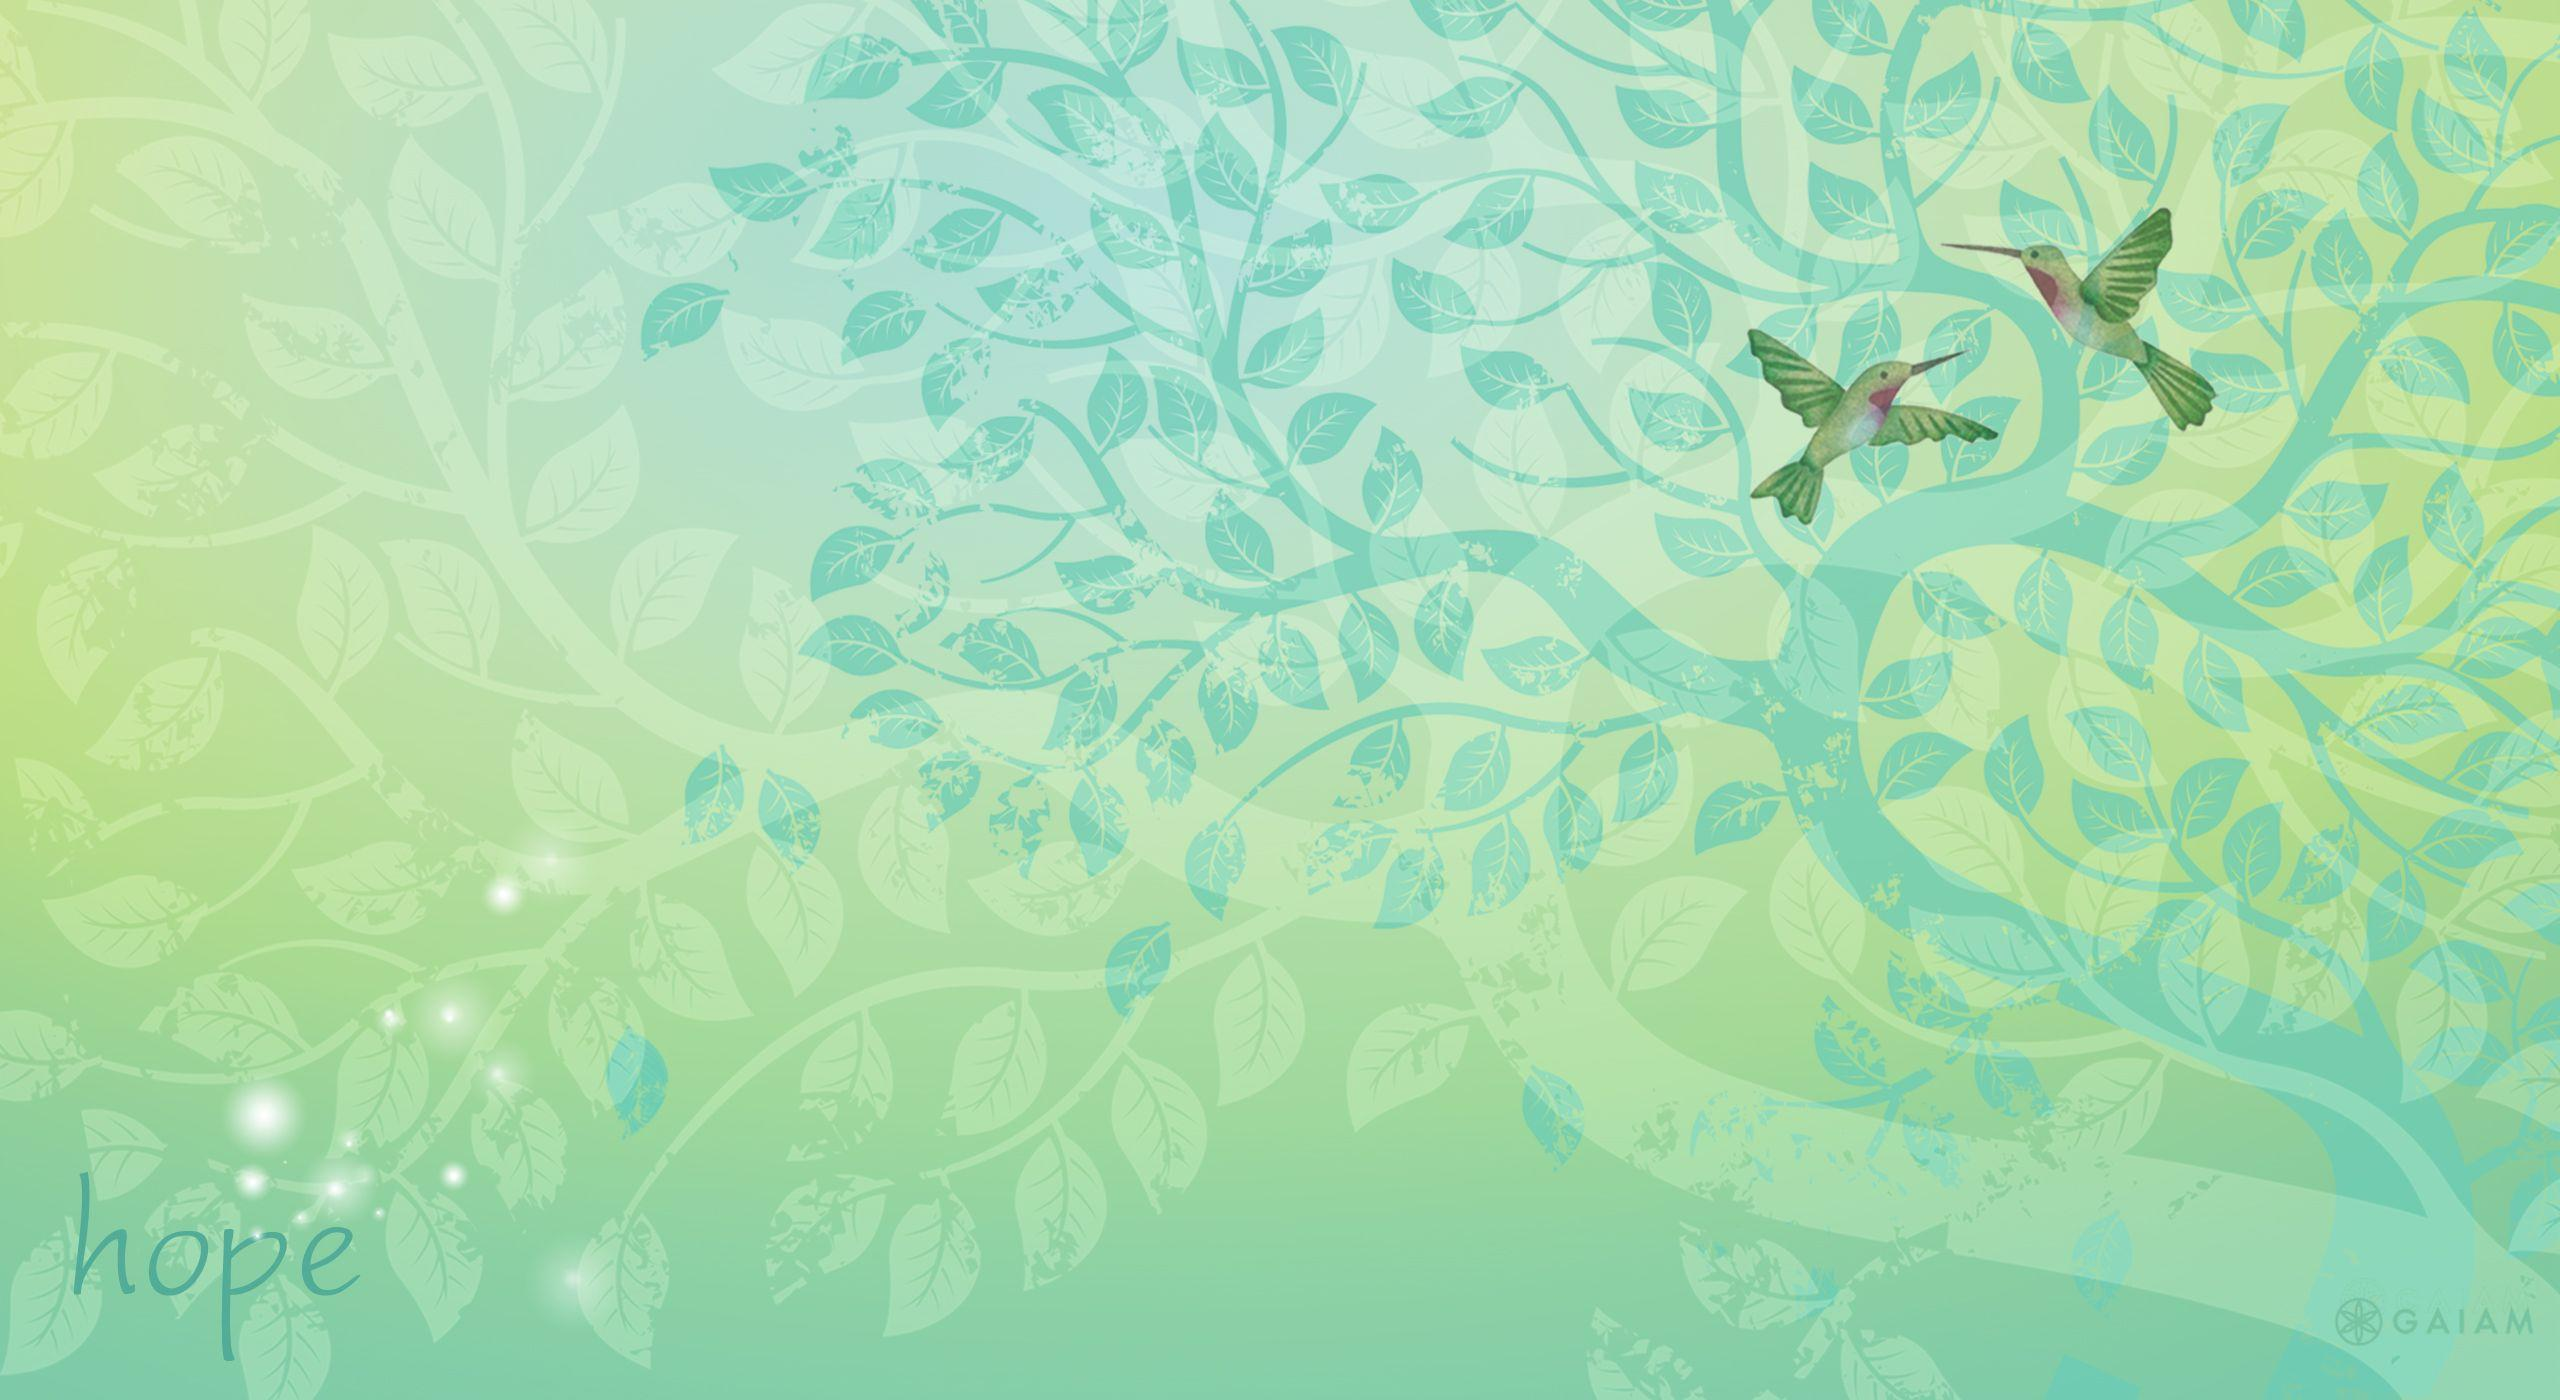 Health Wallpapers - Wallpaper Cave Health And Wellness Wallpaper